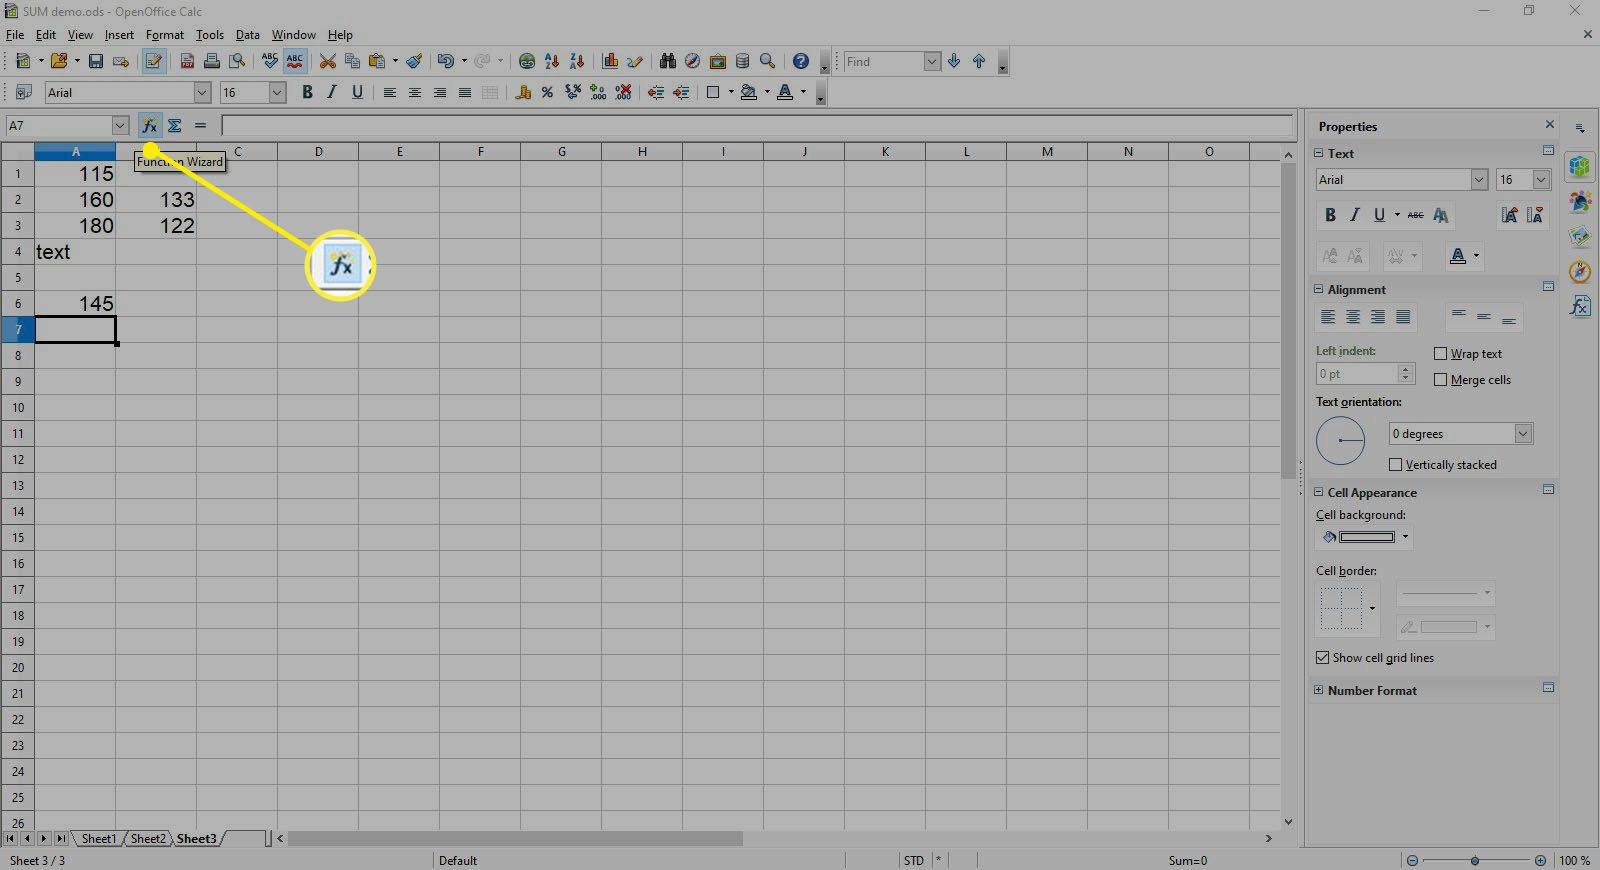 The Function Wizard button is highlighted in OpenOffice Calc.